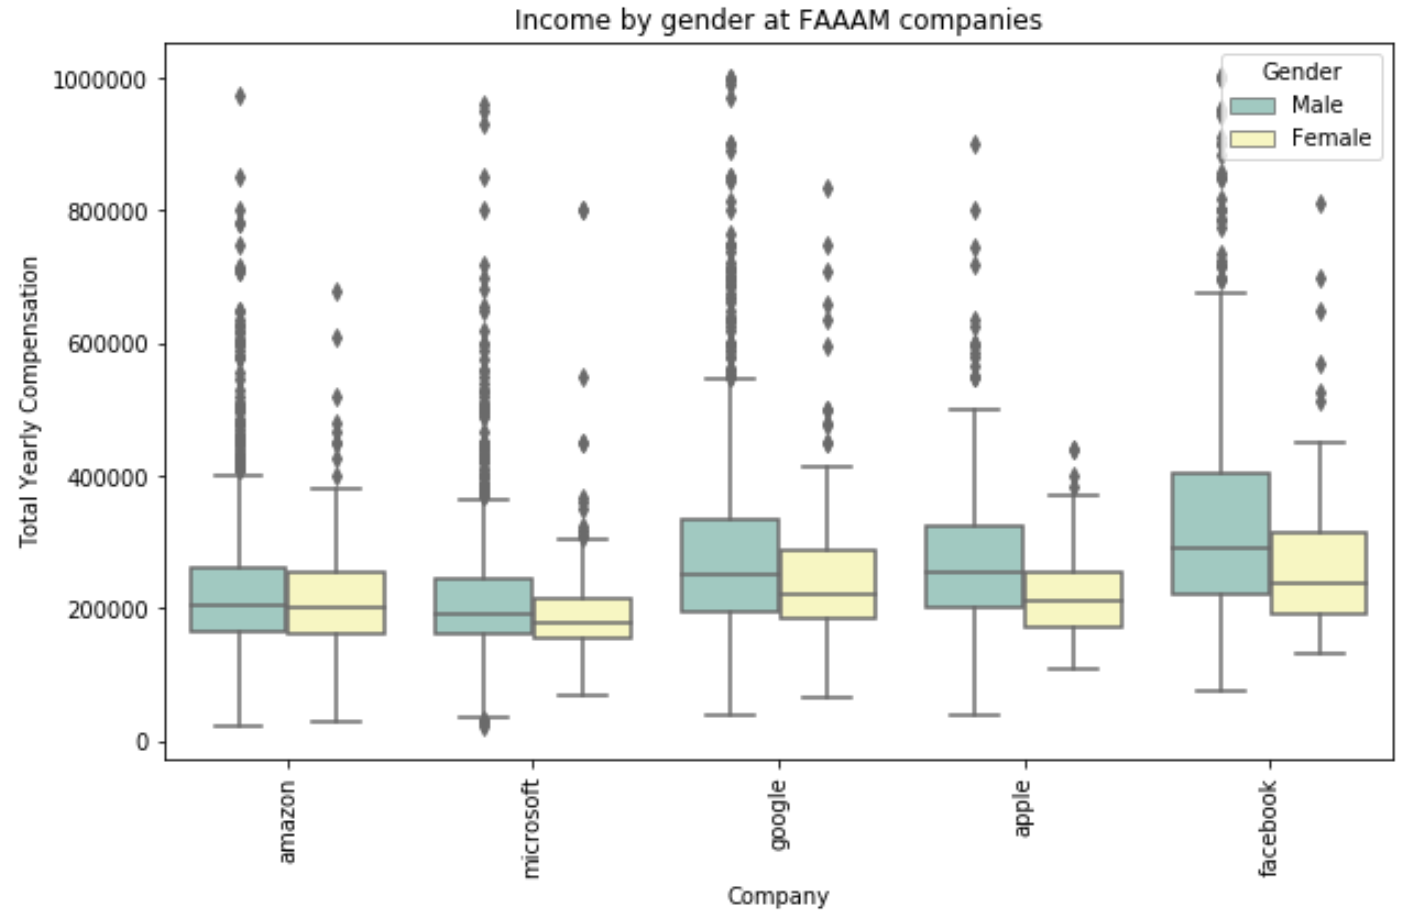 Income and gender by company